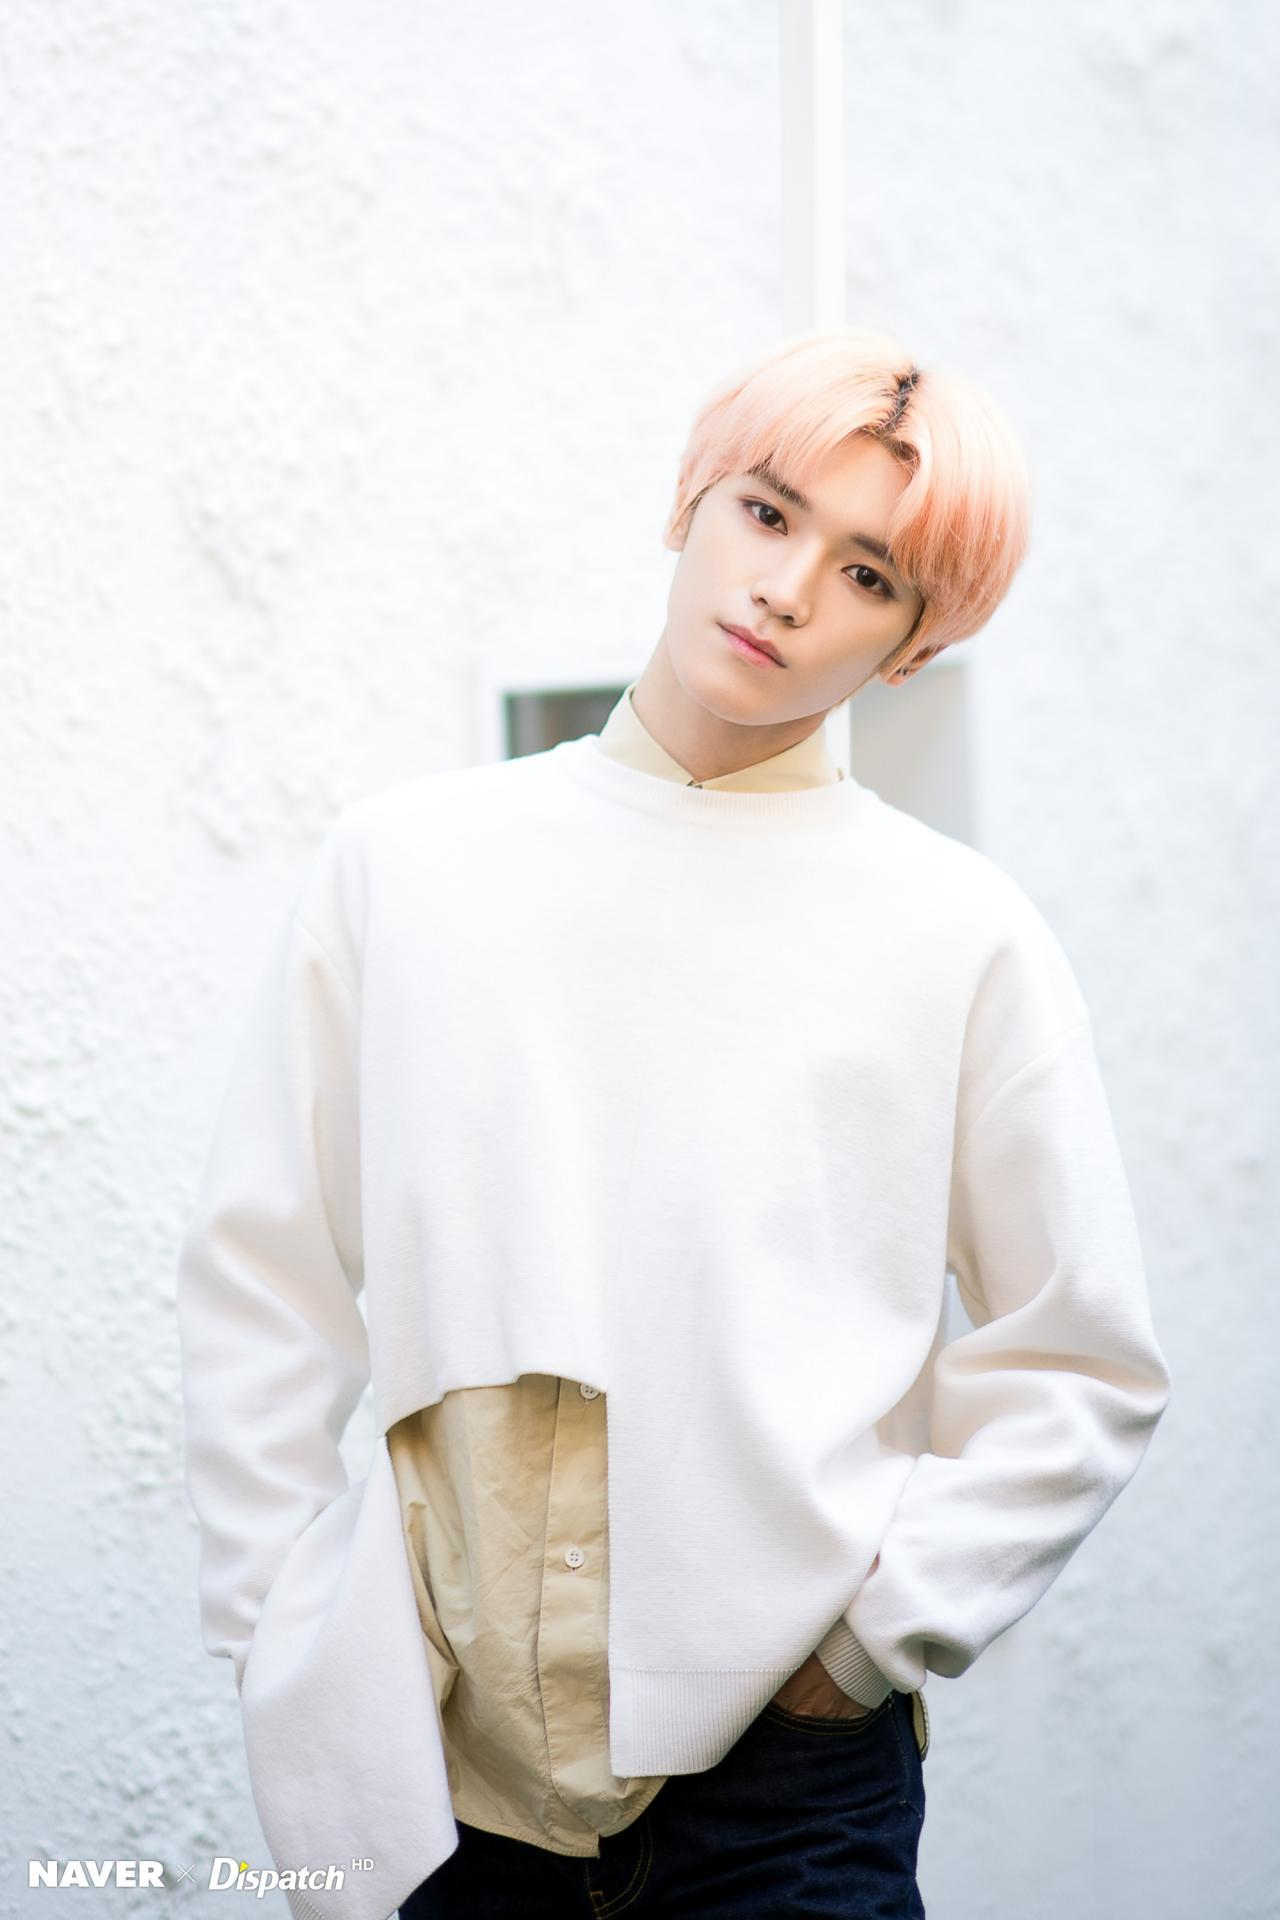 NCT Taeyong Wallpapers - Wallpaper Cave